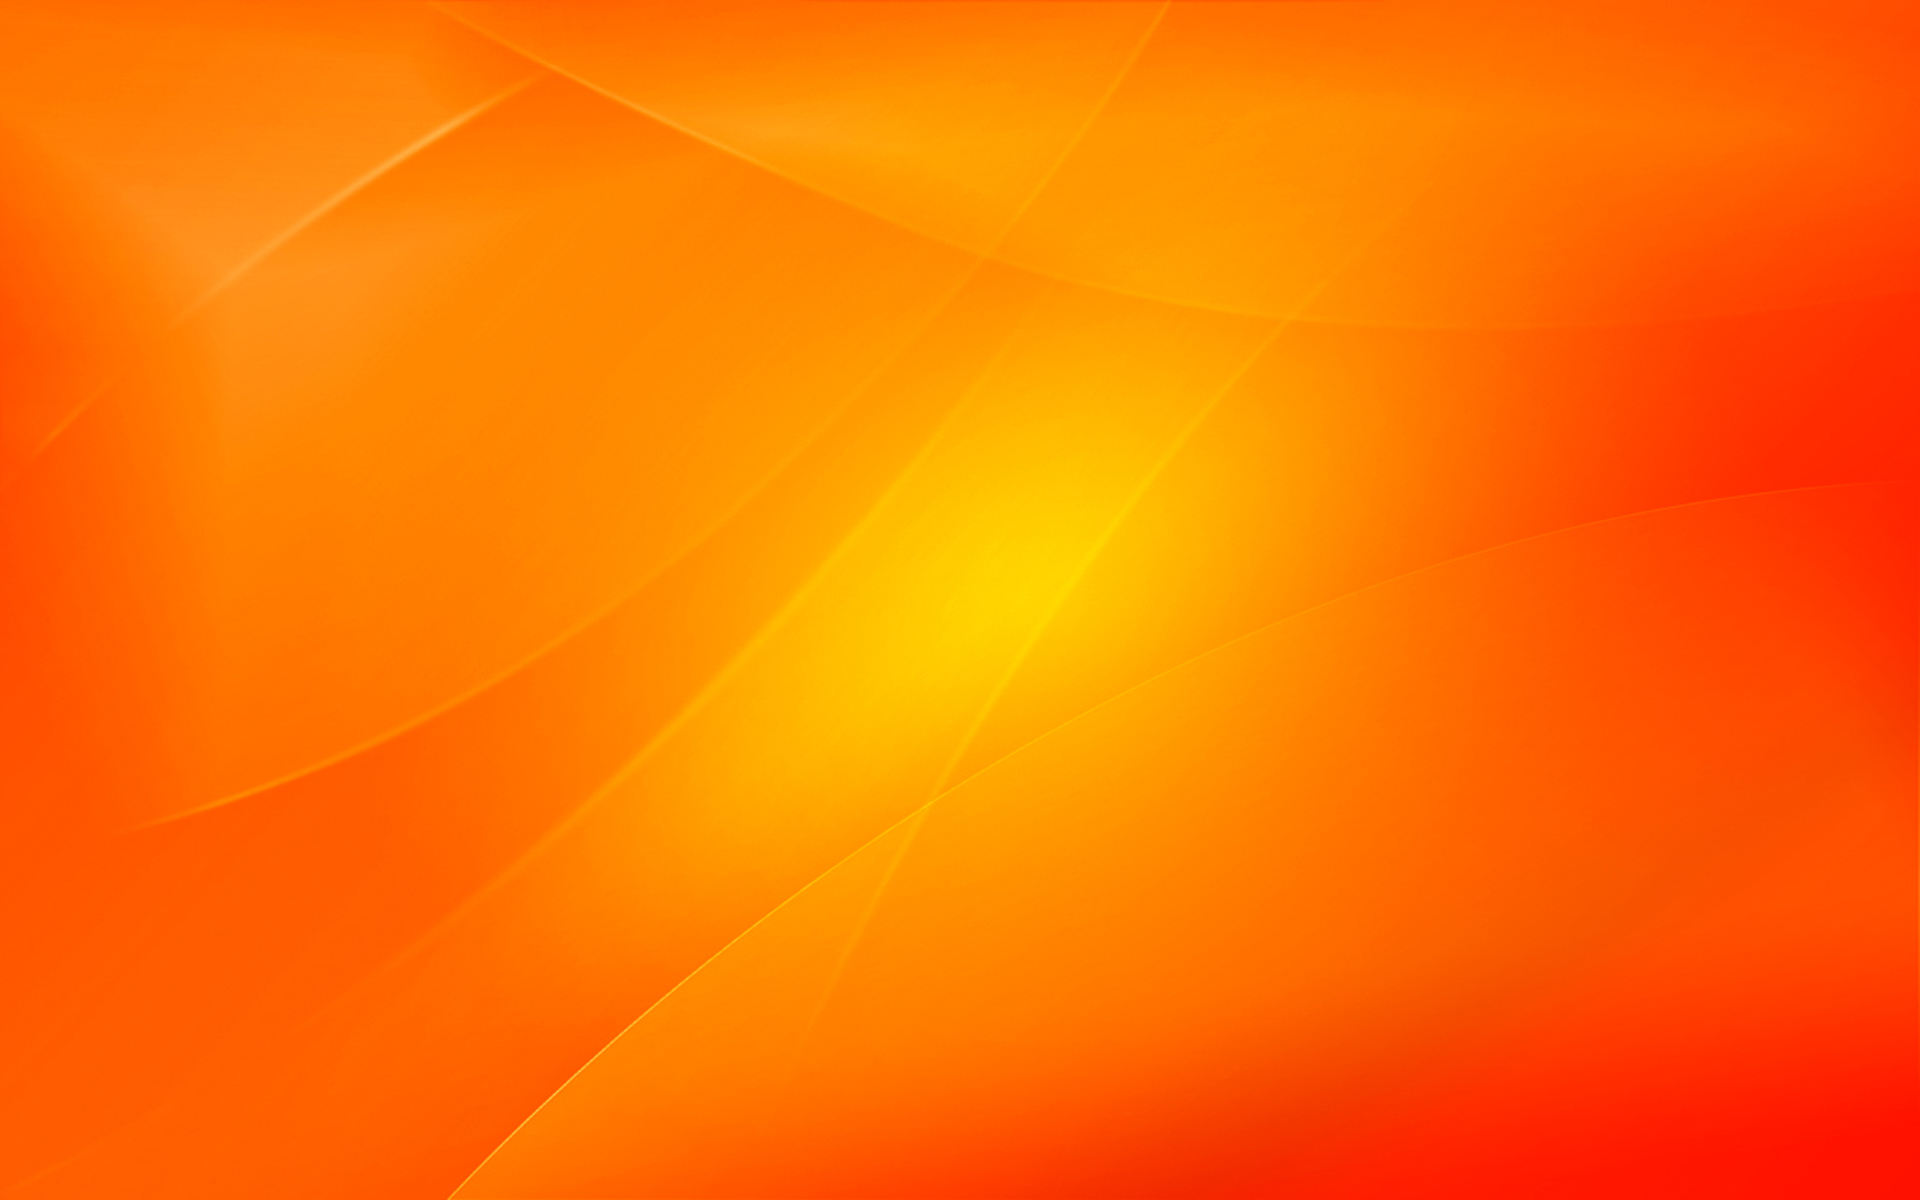 orange galaxy wallpaper tab - photo #44